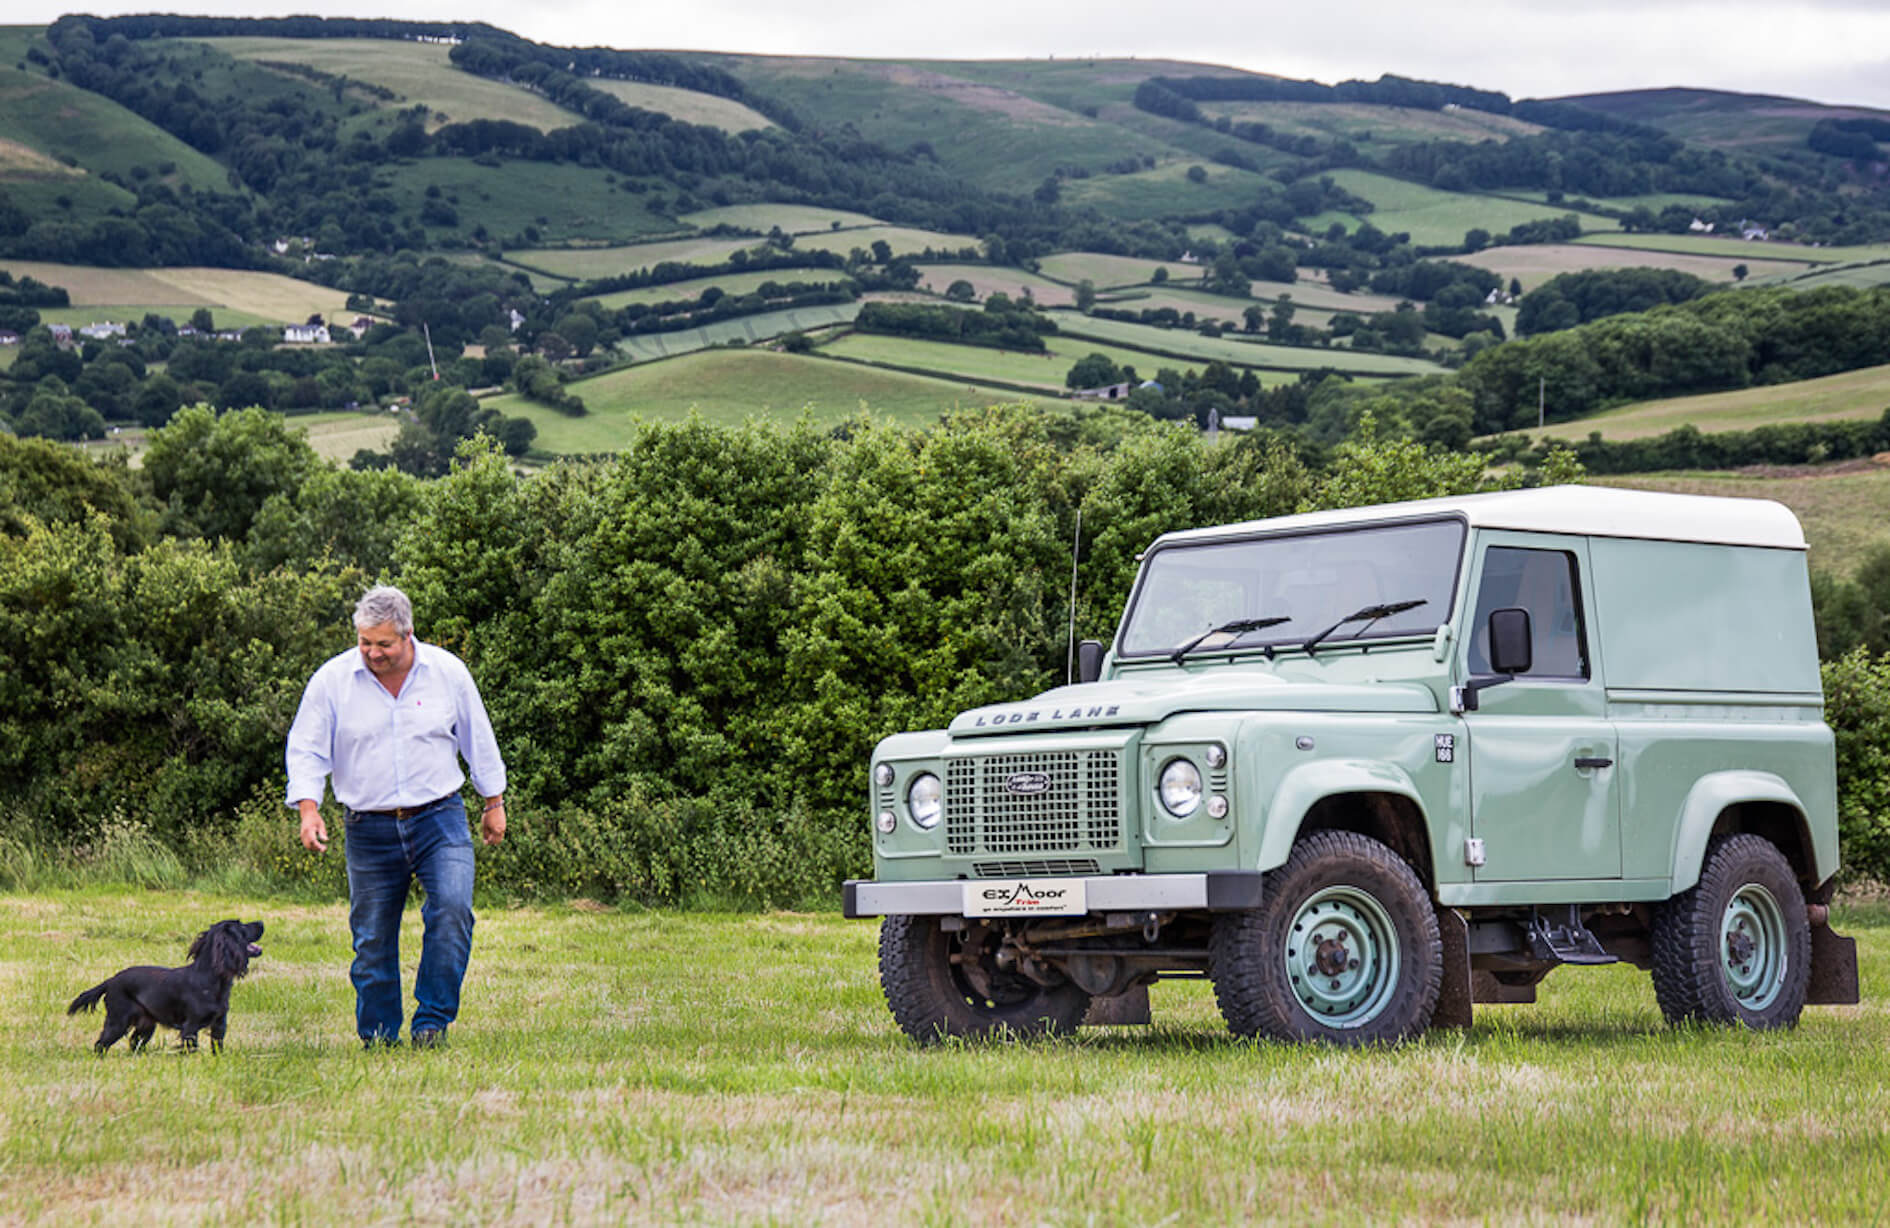 hight resolution of exmoor trim manufactures and supplies a wide variety of products for the land rover range of vehicles our brand has become known globally for quality and